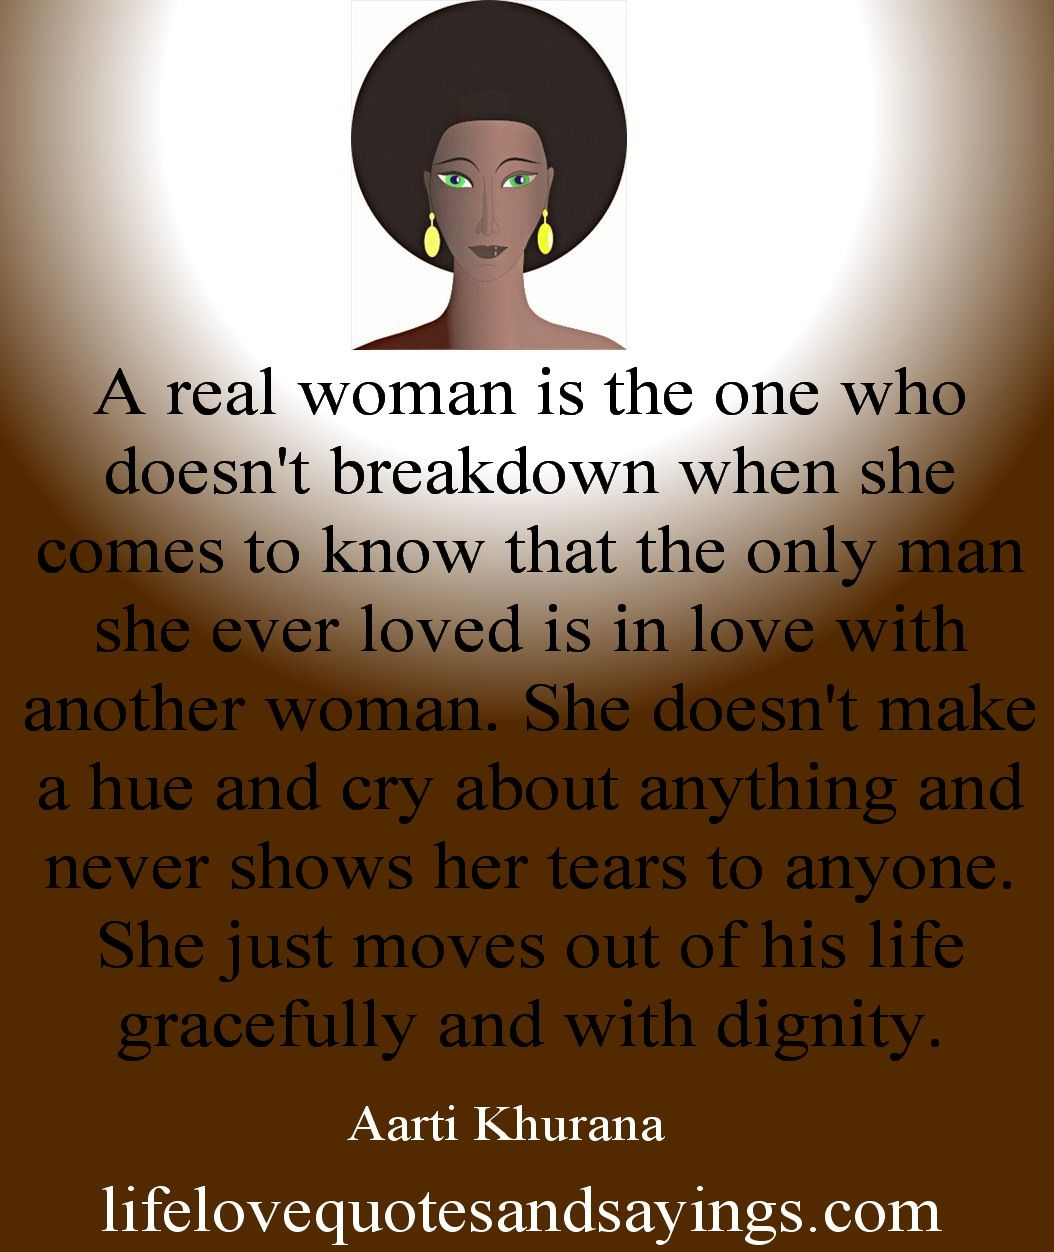 Love Quotes For Women A Real Woman Is The One Who Doesn't Breakdown When She Comes To